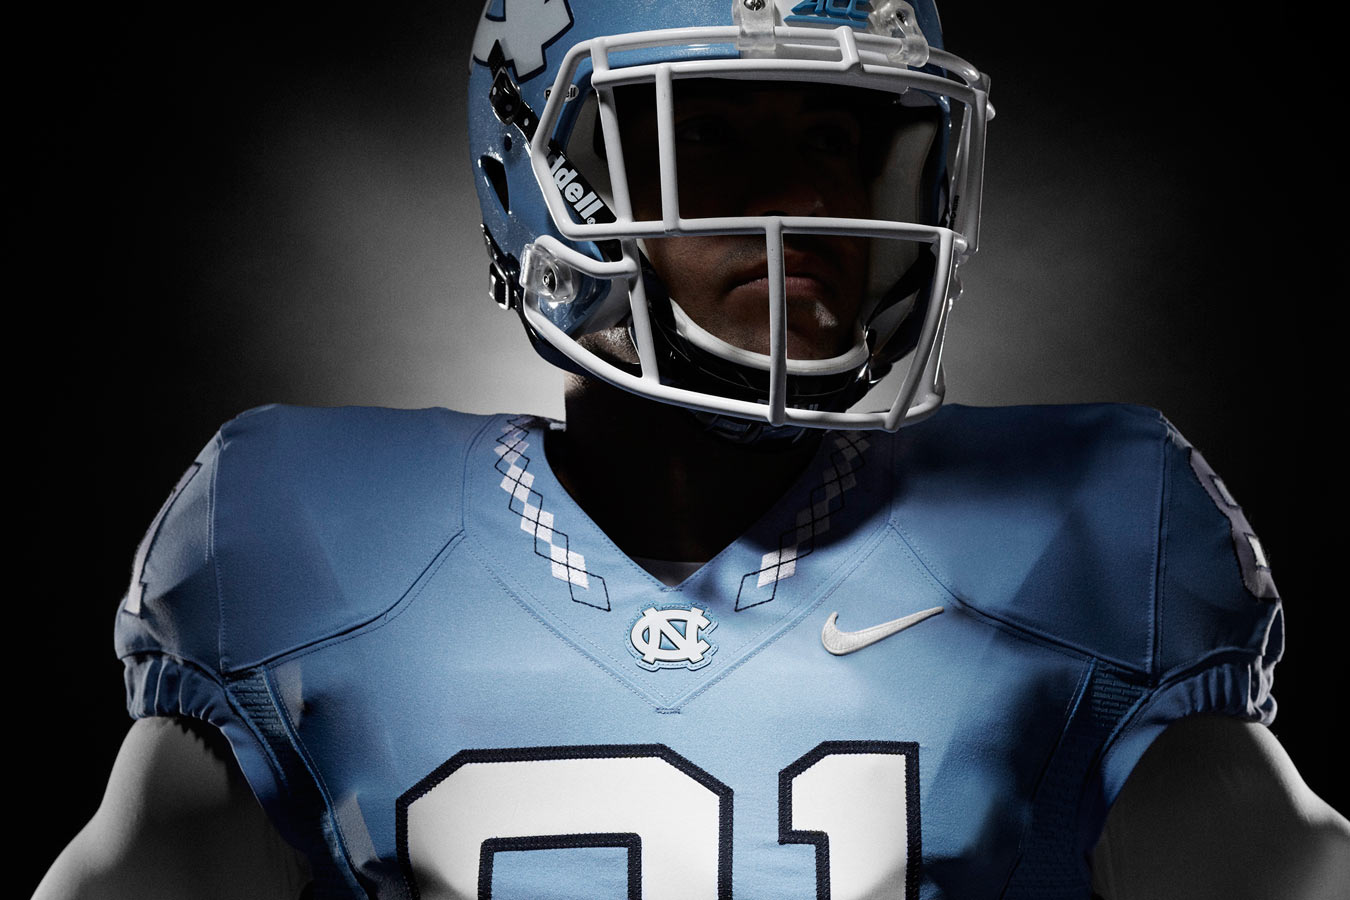 01fc11db7 North Carolina football embraces argyle pattern in new uniforms